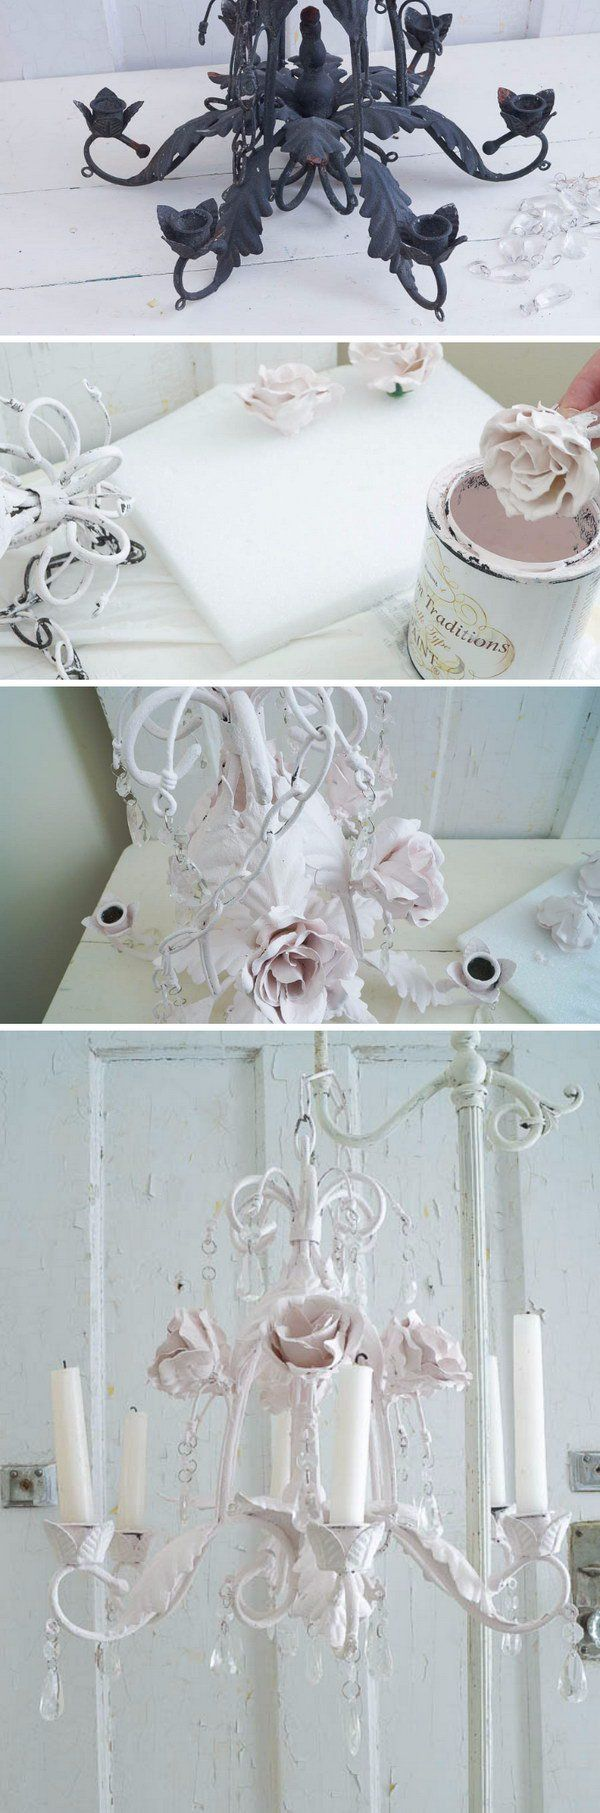 shabby chic lighting ideas. romantic shabby chic diy project ideas u0026 tutorials lighting